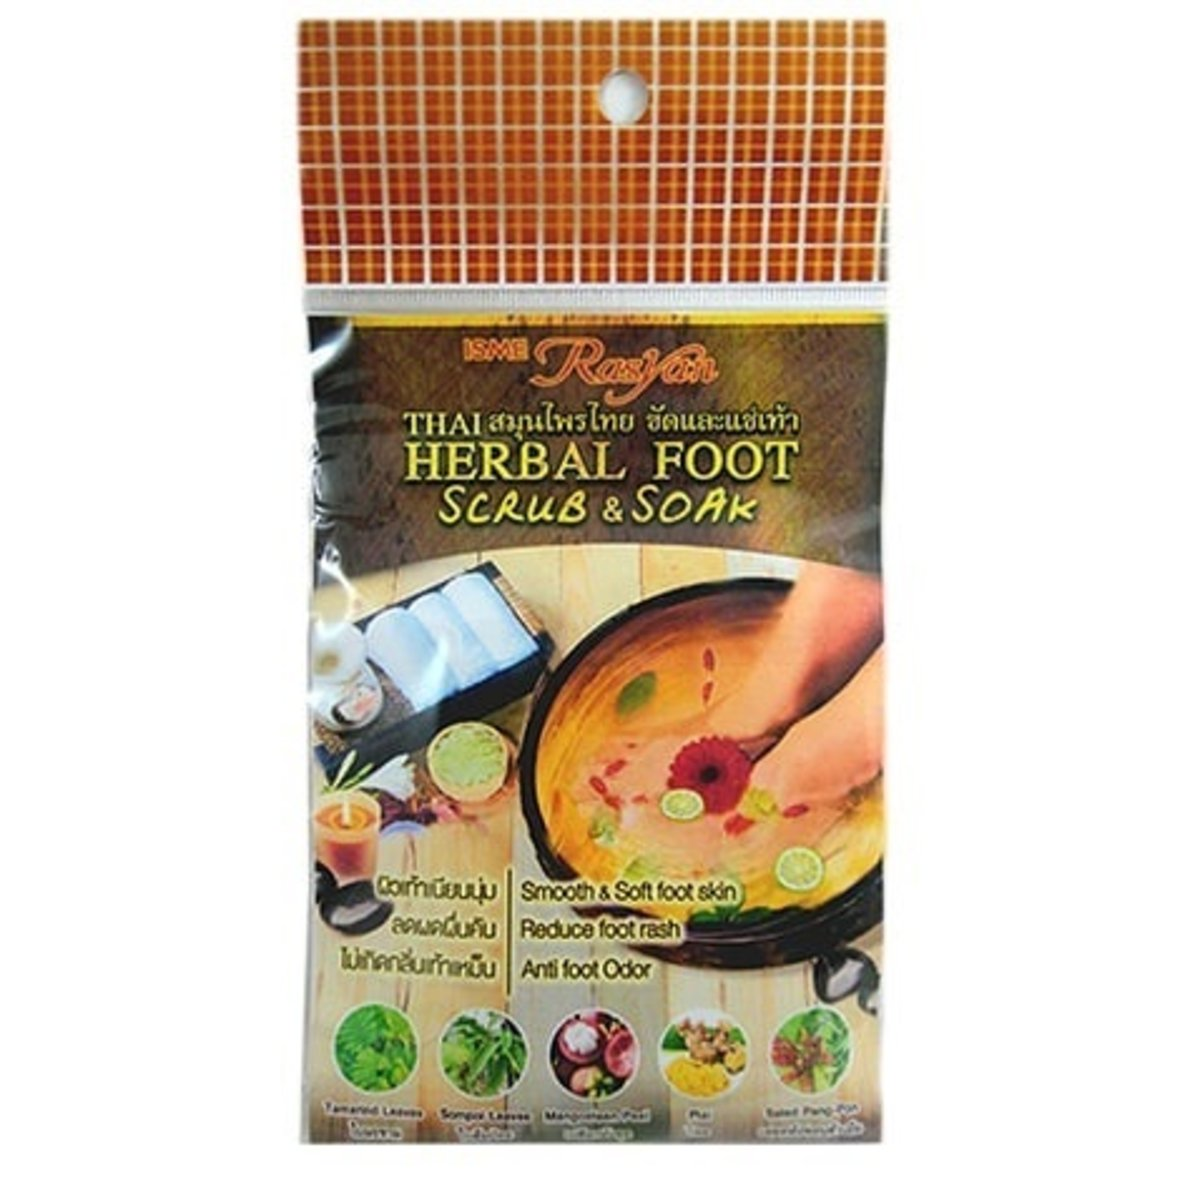 HERBAL FOOT SCRUB & SOAK